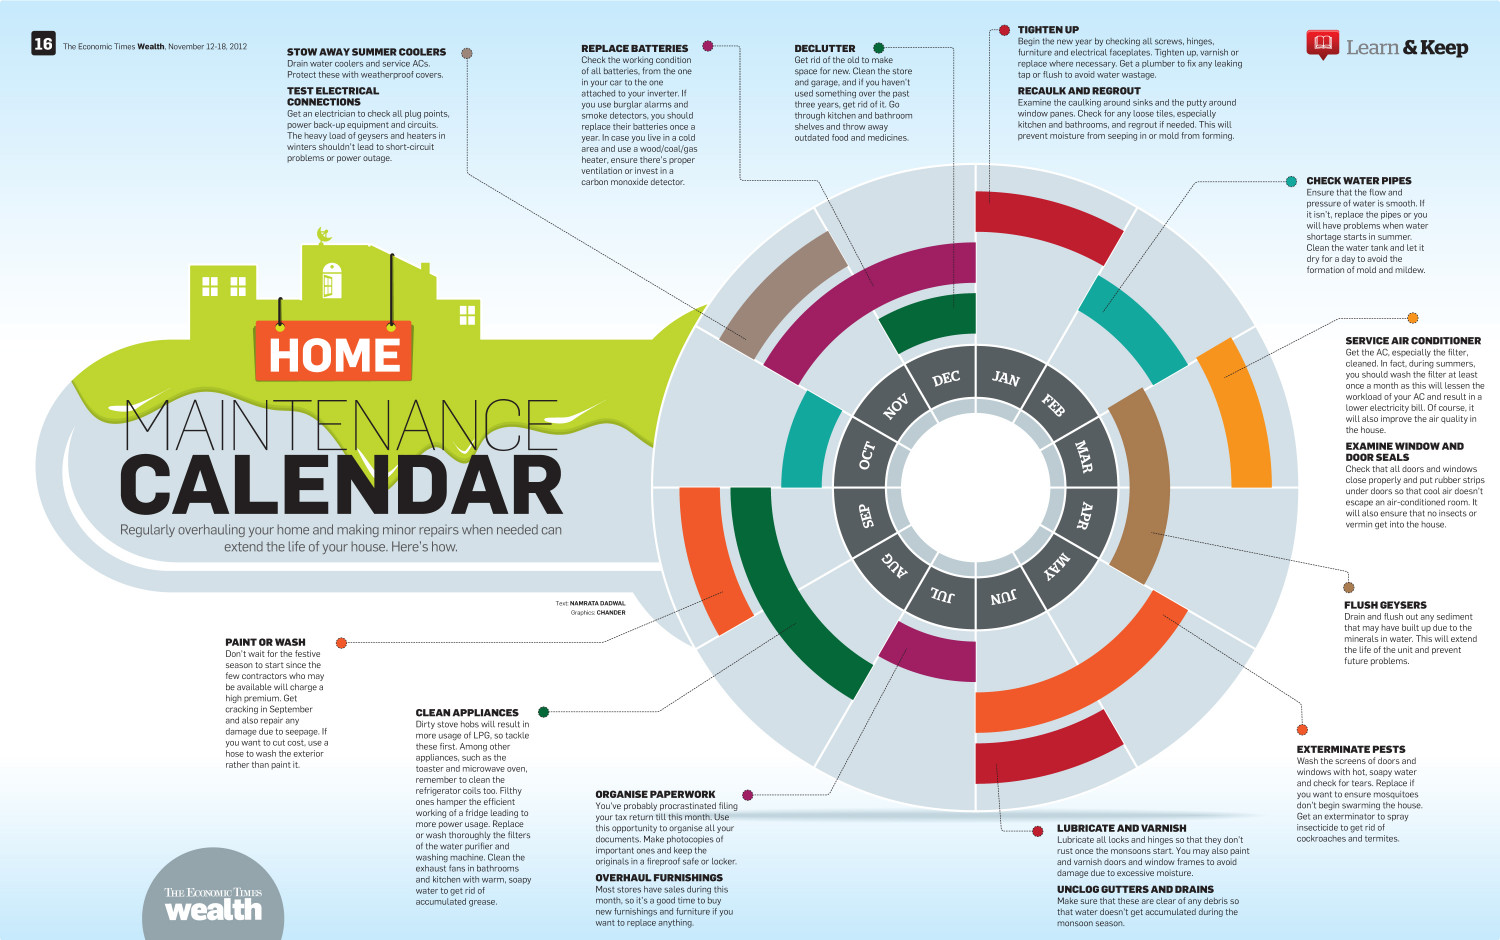 Home maintenance yearly calender Infographic